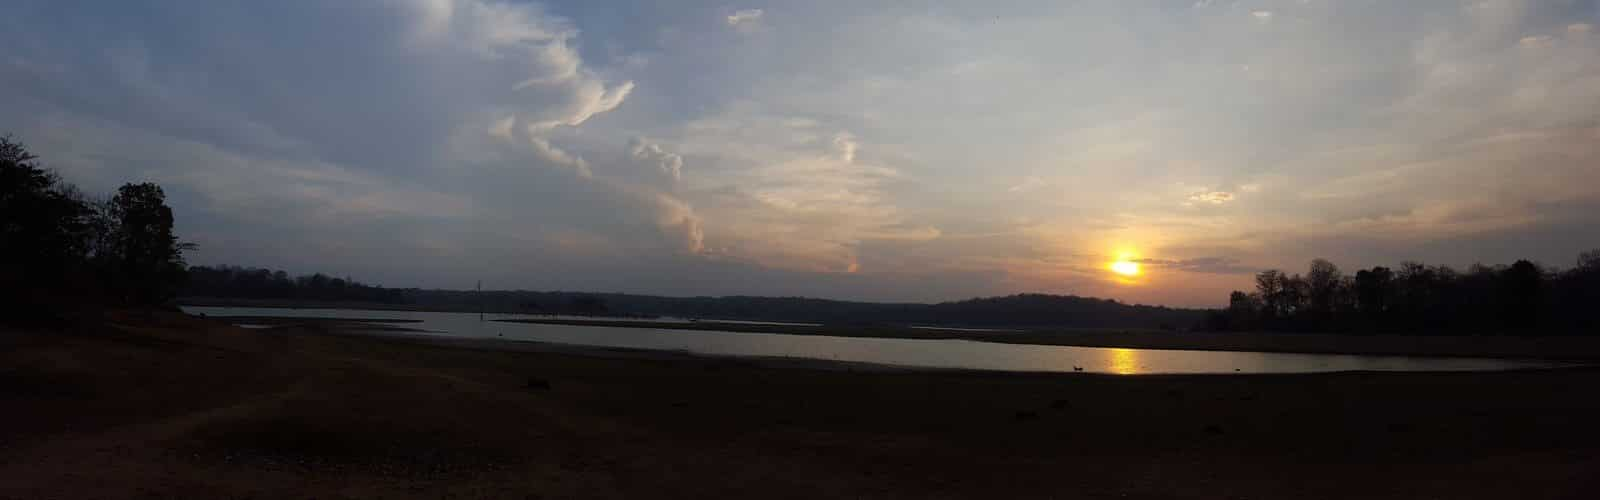 A sunset panaroma while we were waiting for a 3rd encounter